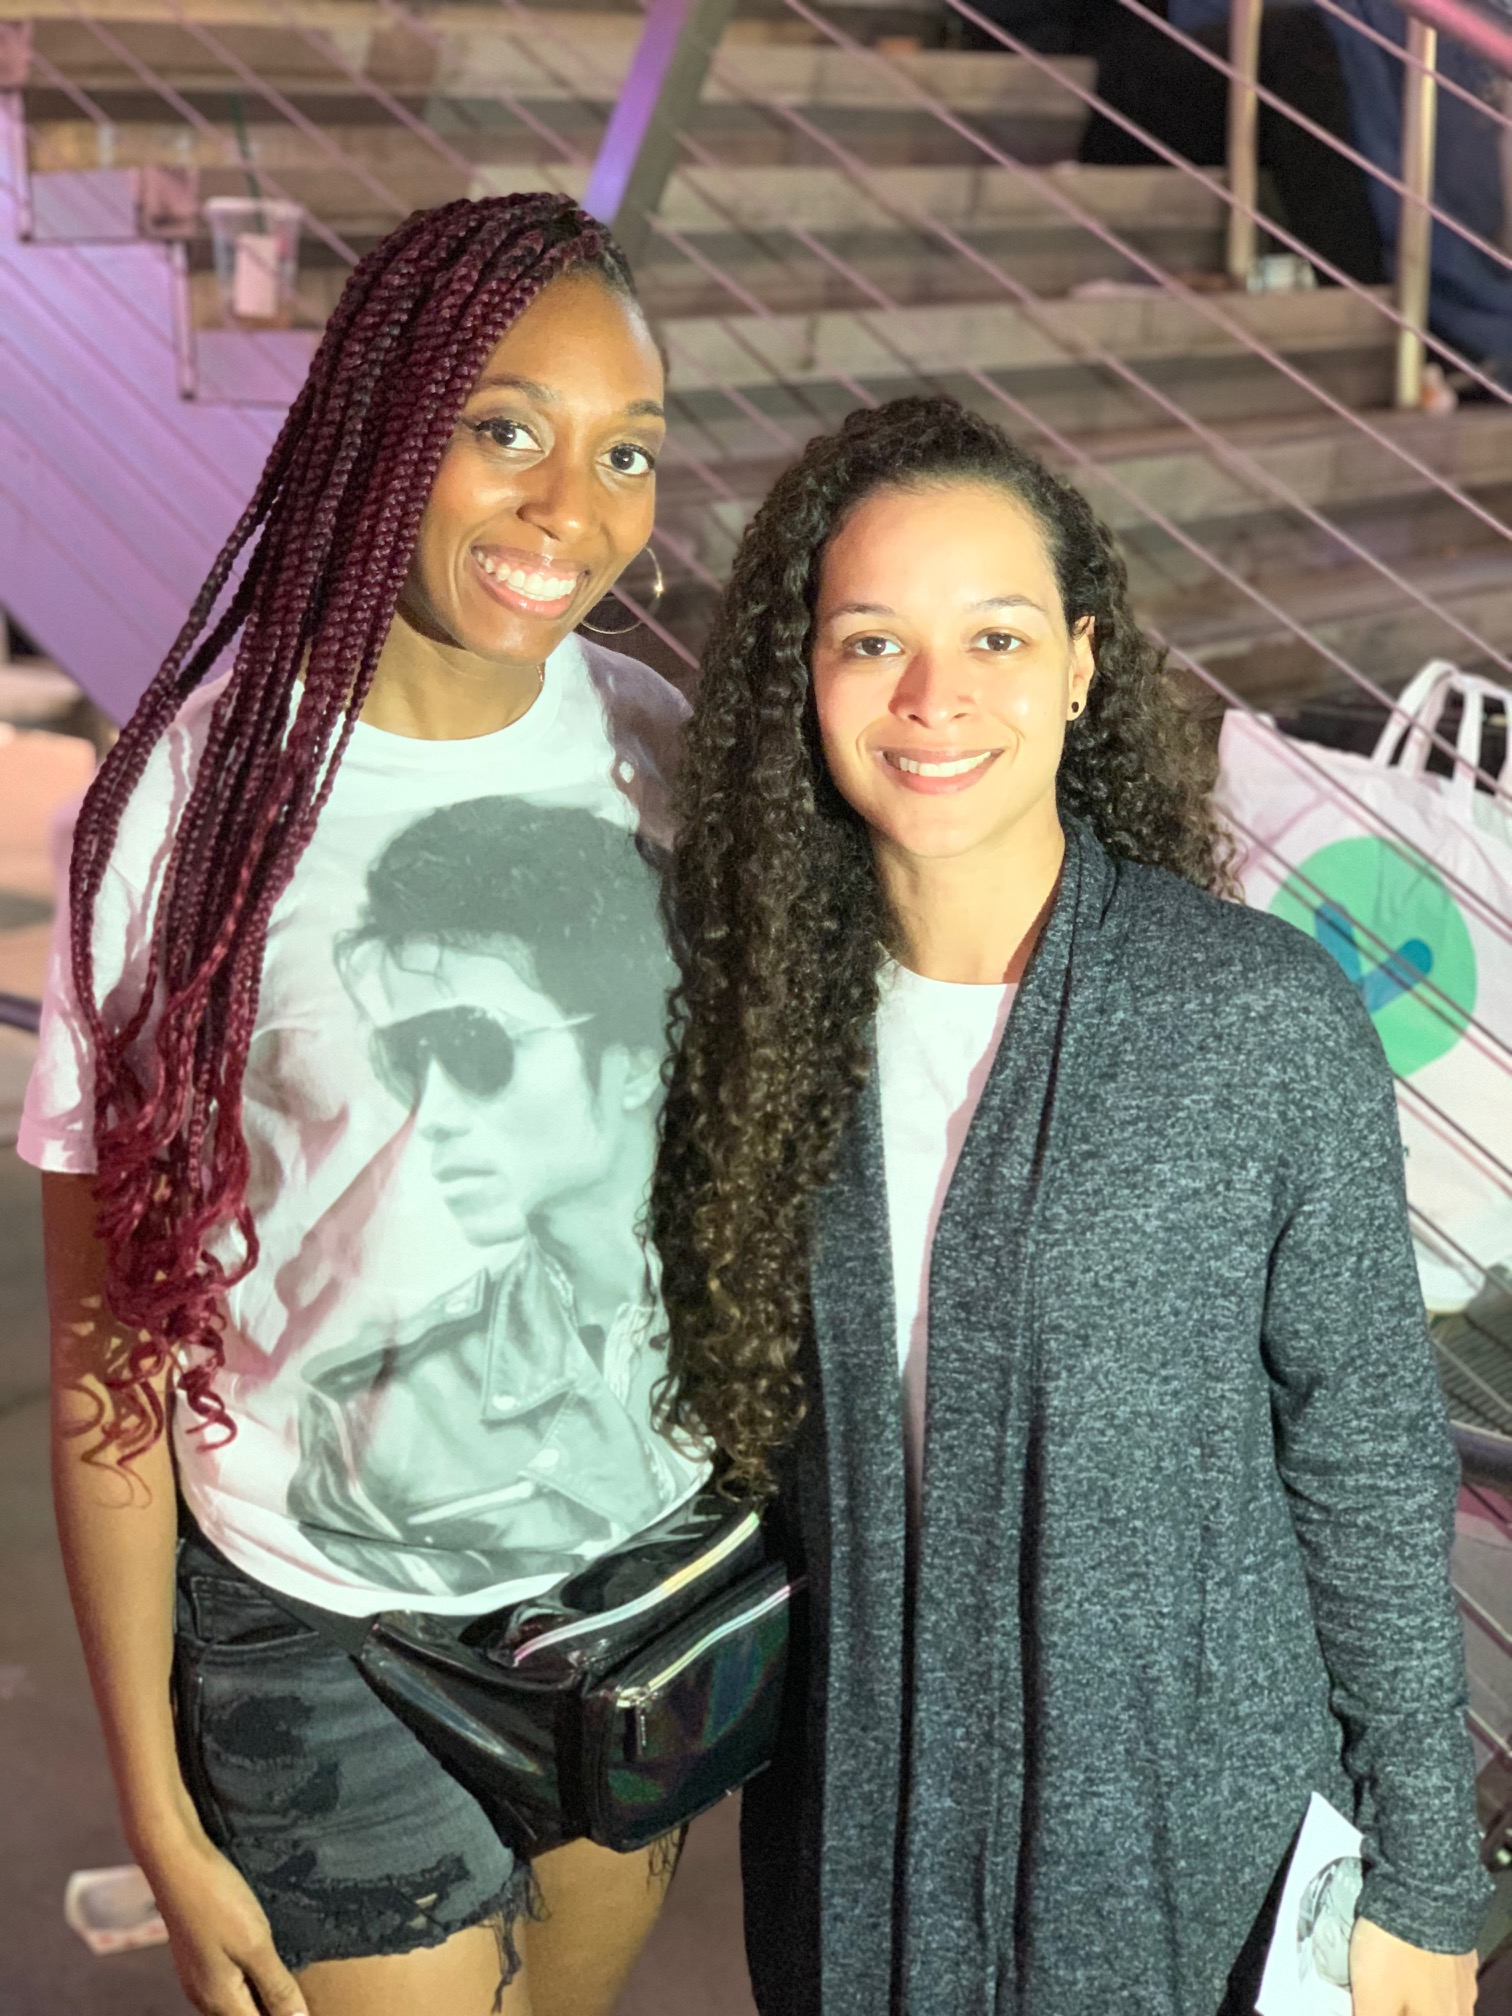 I also met Brandi Jackson (niece of Michael Jackson) at the Hollywood star on June 25th this year. She was SO kind and I thanked her and complimented all of the work she and Taj Jackson have done this year advocating and fighting for Michael's name in the midst of all of what's gone on in the media this year.